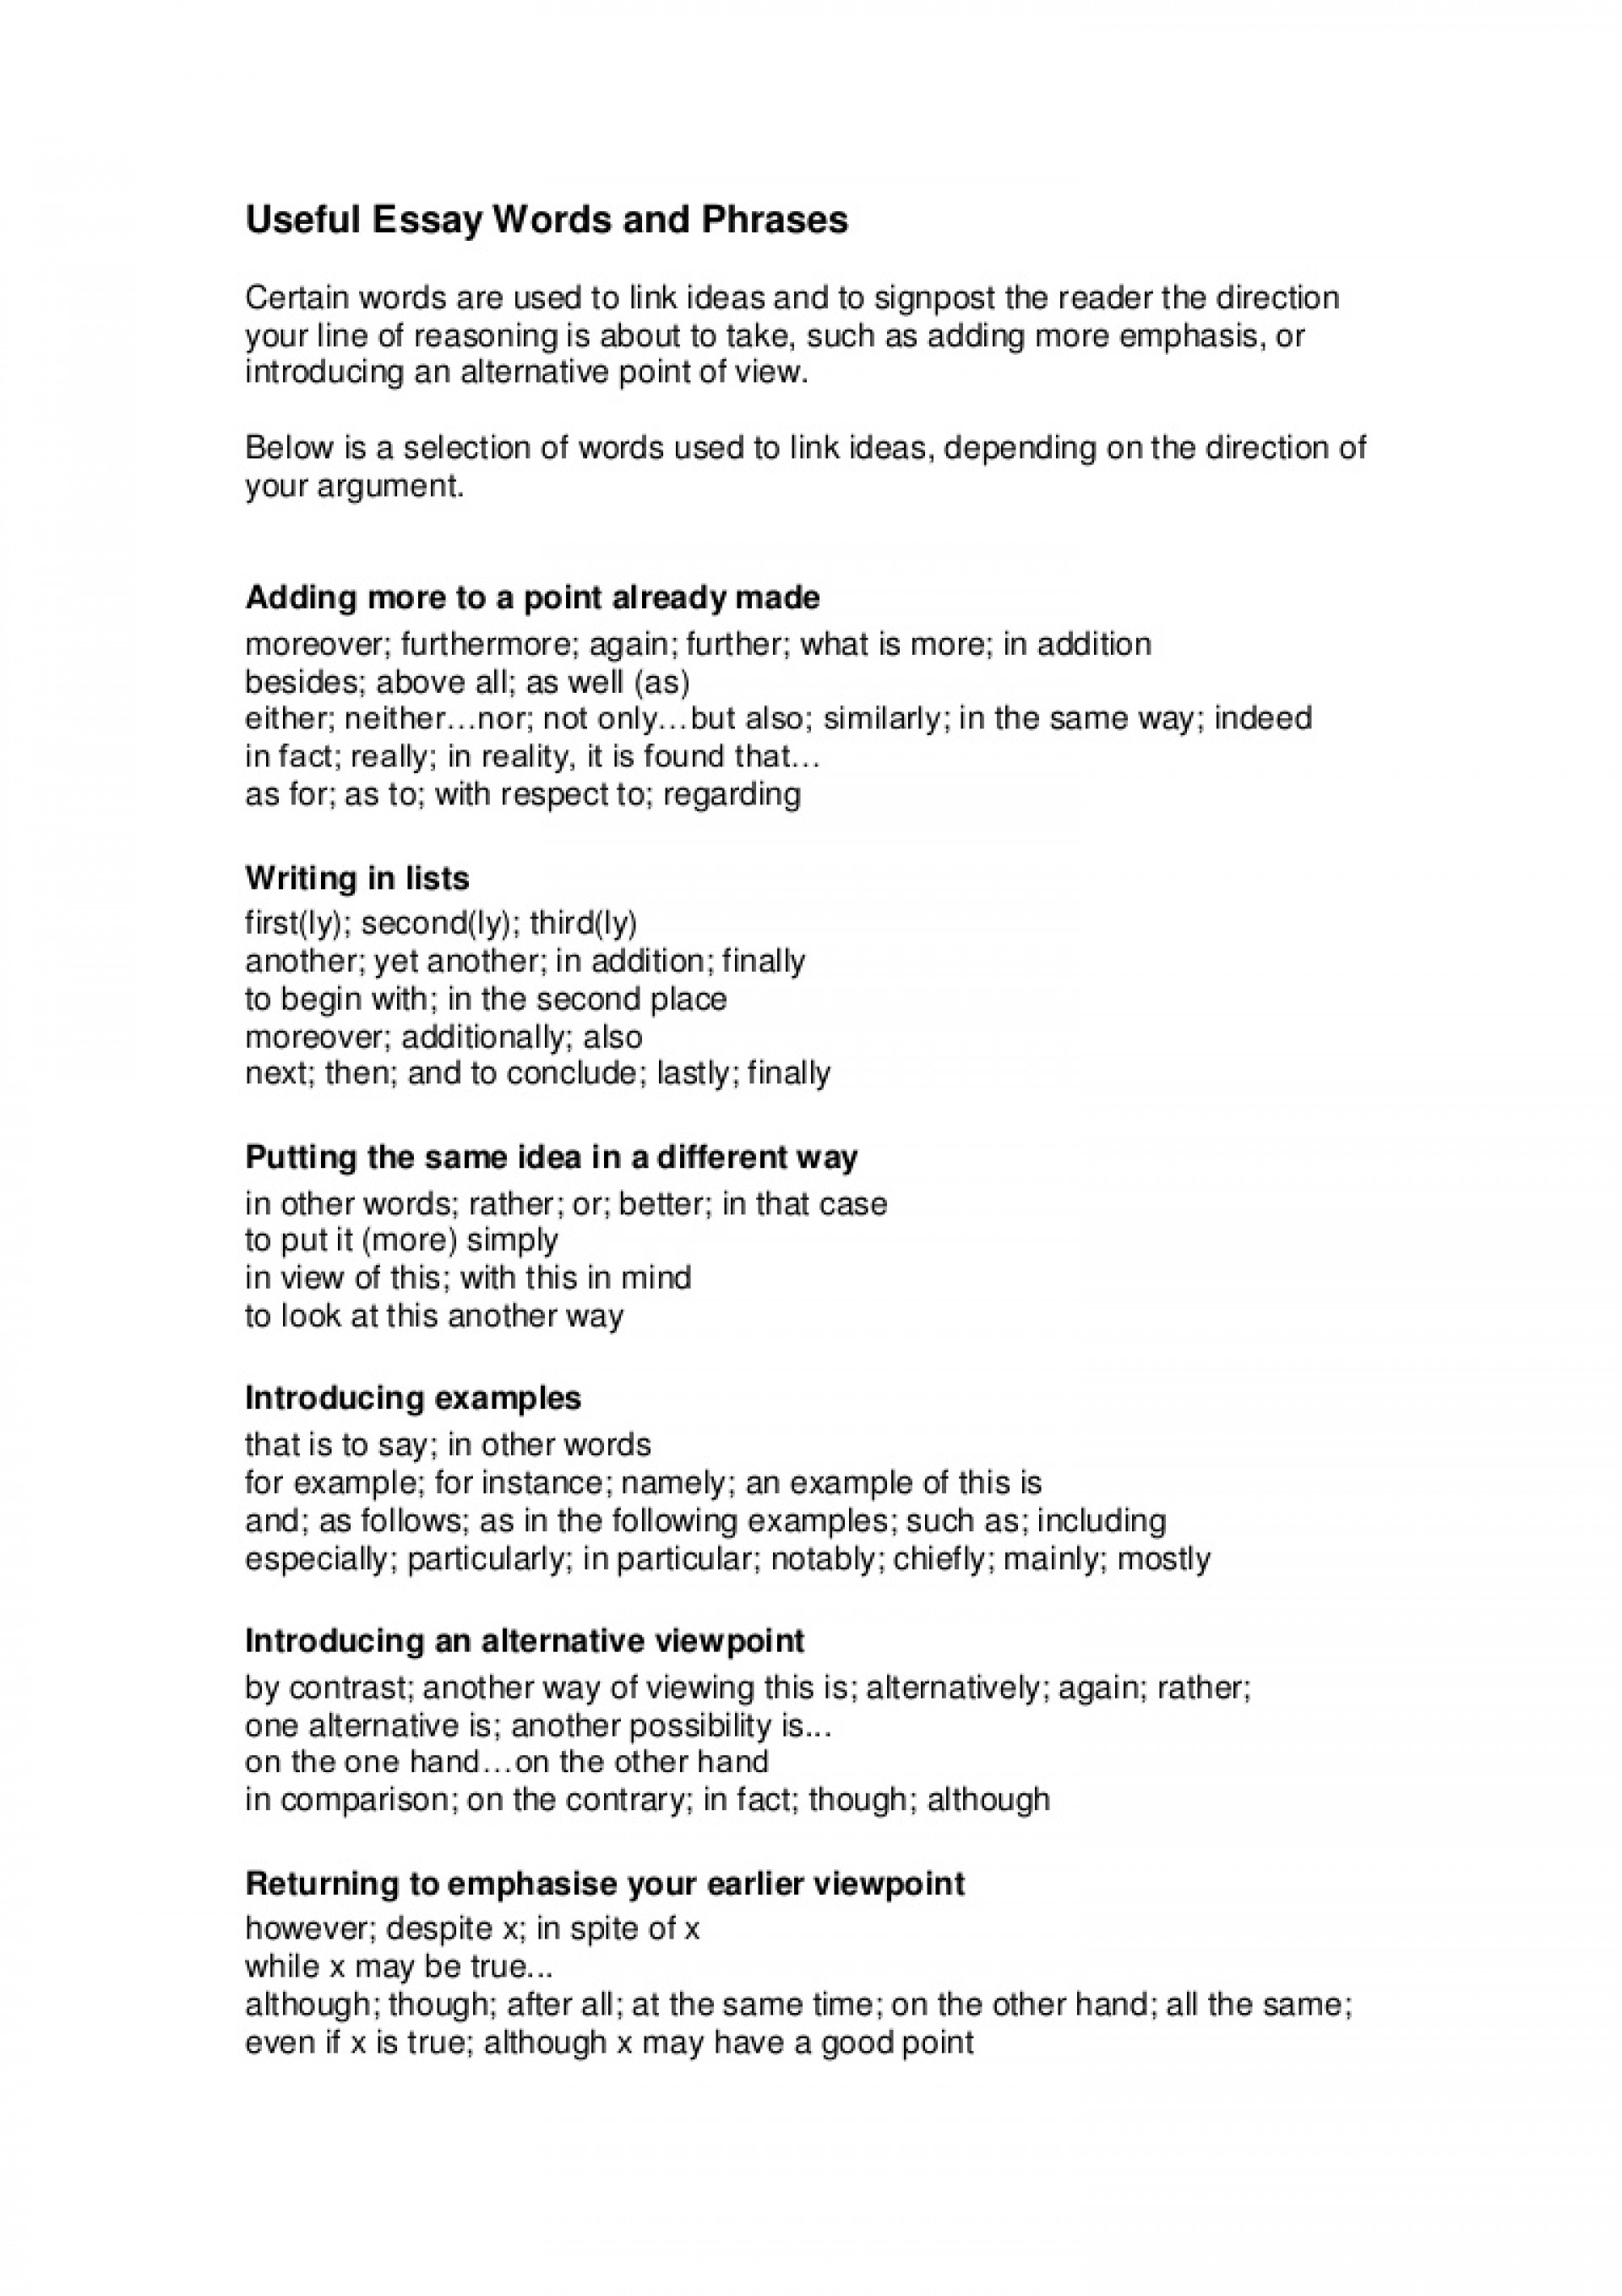 018 Writtenassignments2usefulessaywordsandphrases Phpapp02 Thumbnail Opening Sentences For Essays Essay Unique Examples Of Good College Paragraphs Starting 1920